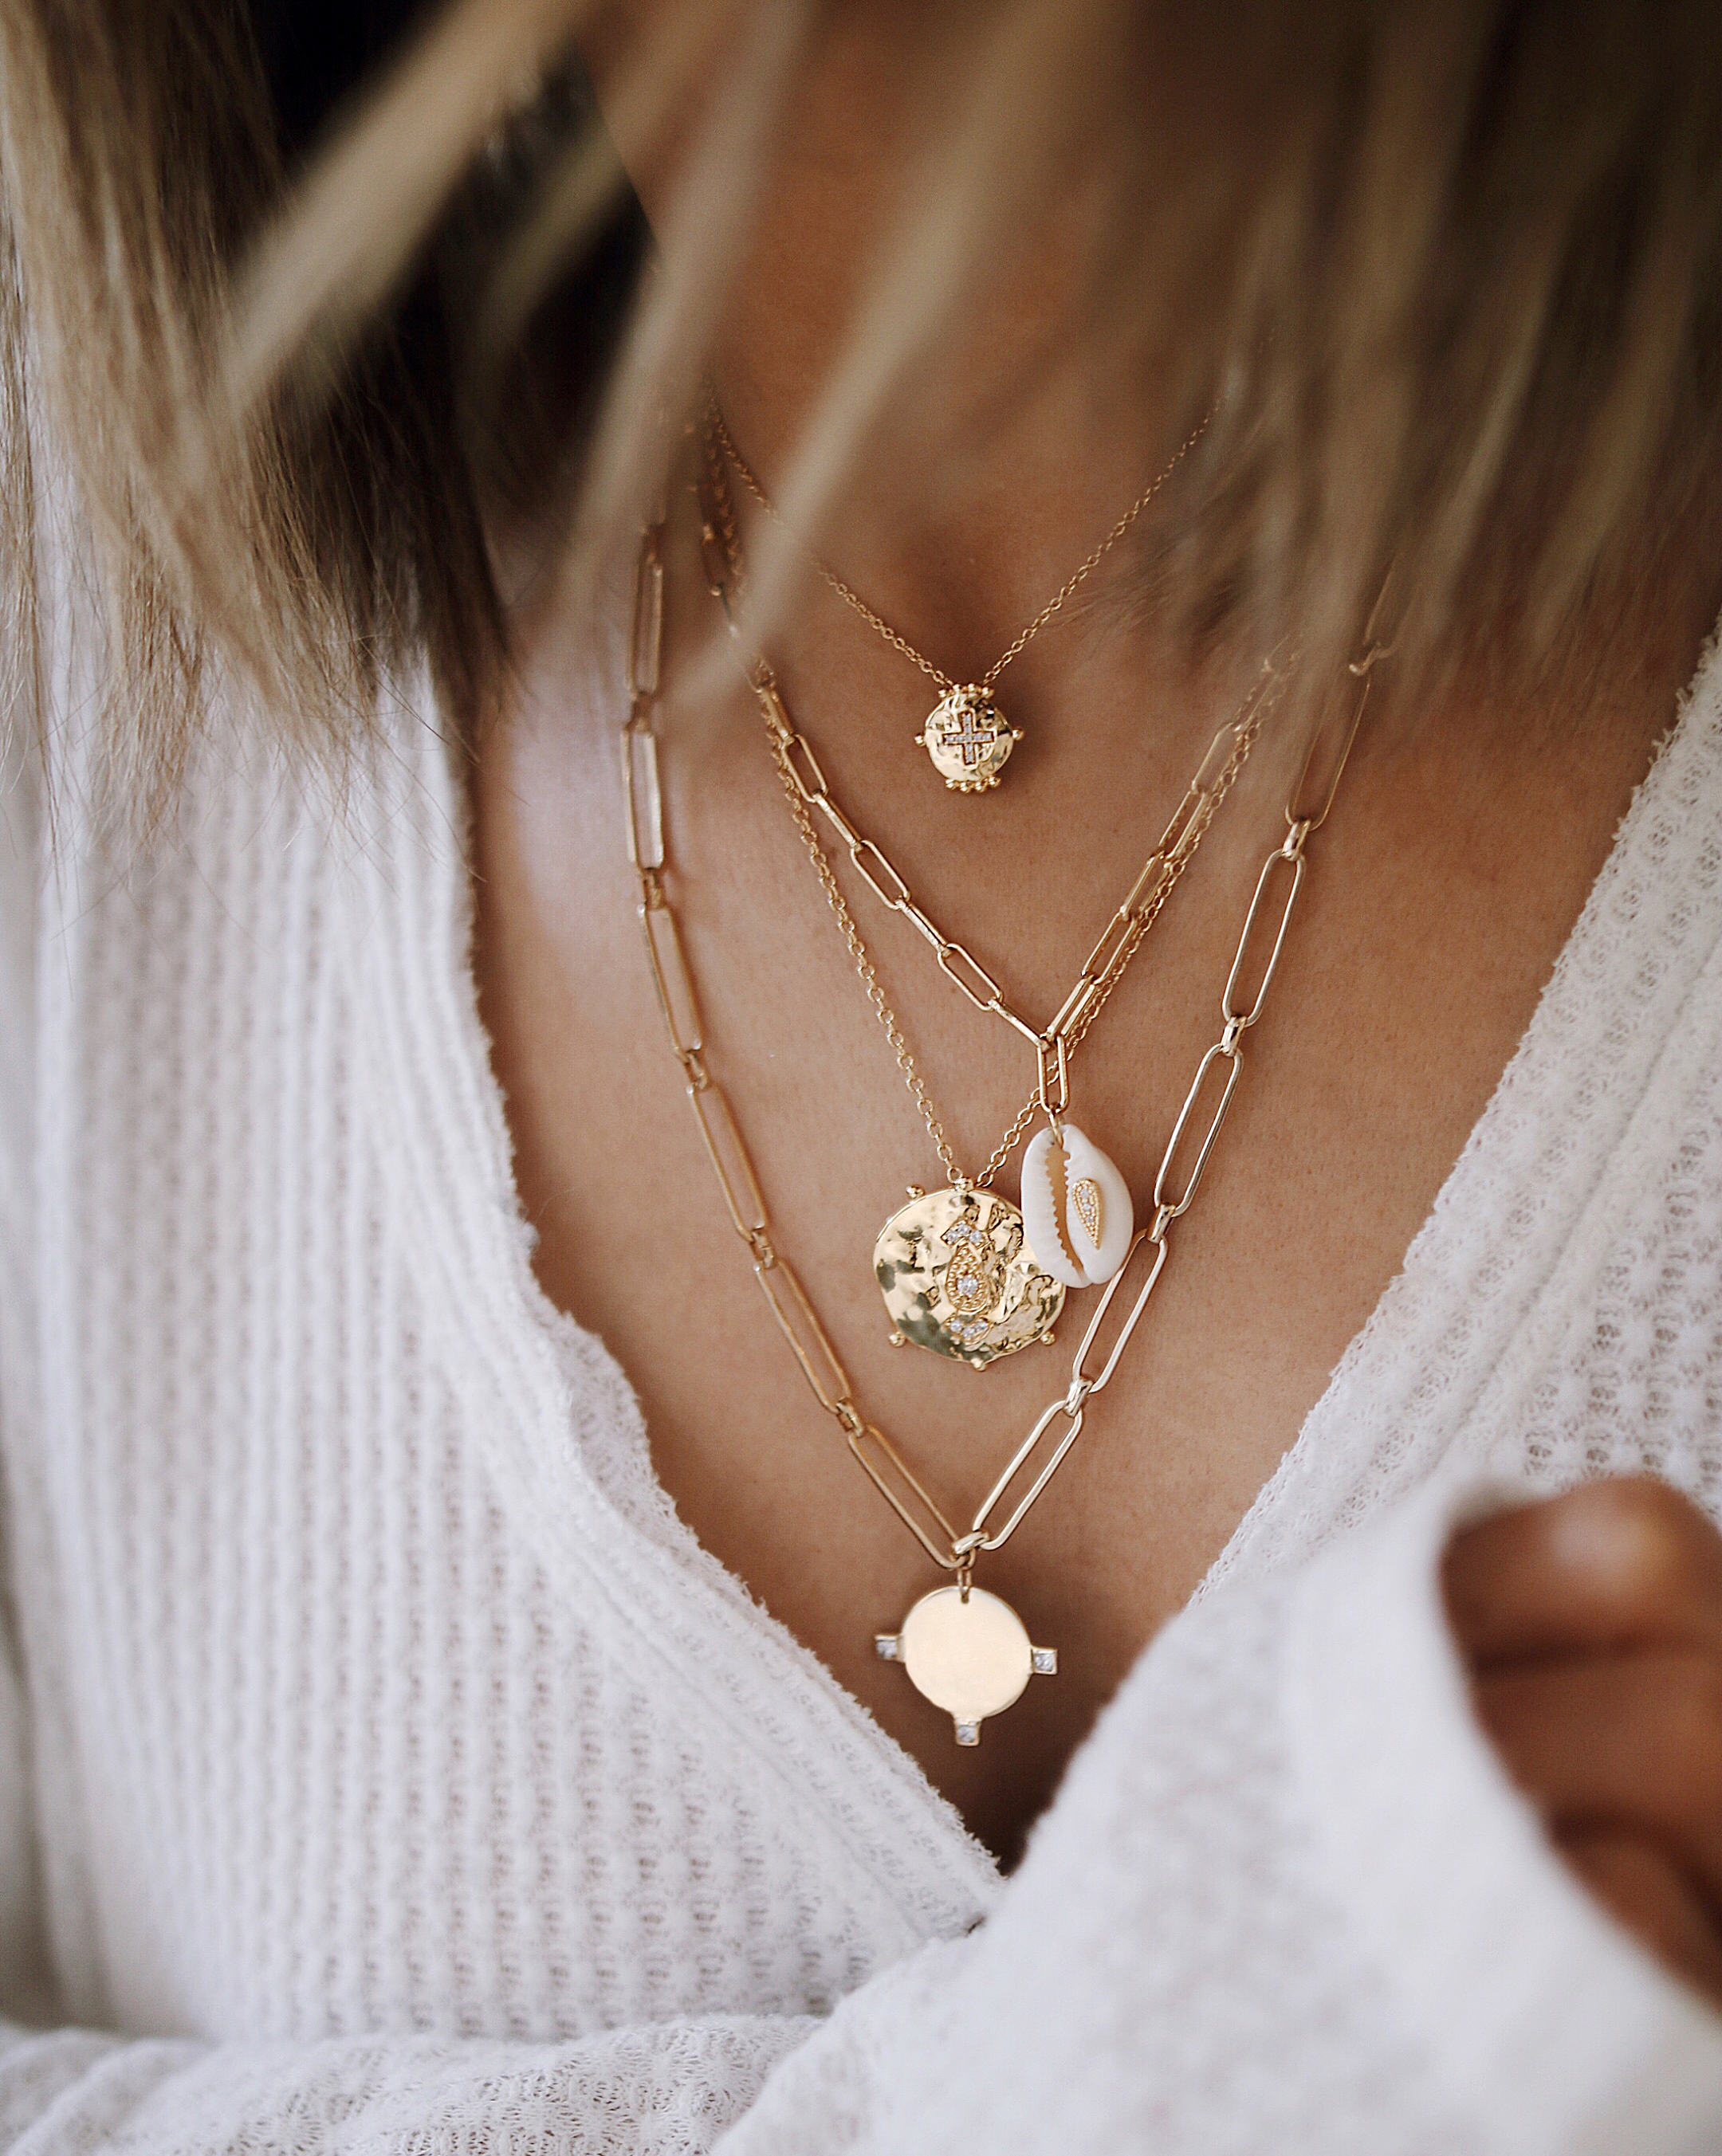 Chon & CHON - www.chonandchon.com MYA - accumulation colliers or Mya bAY, jEWELRY ADDICT, NECKLACES LAYER, necklaces set, MYA BAY NECKLACES